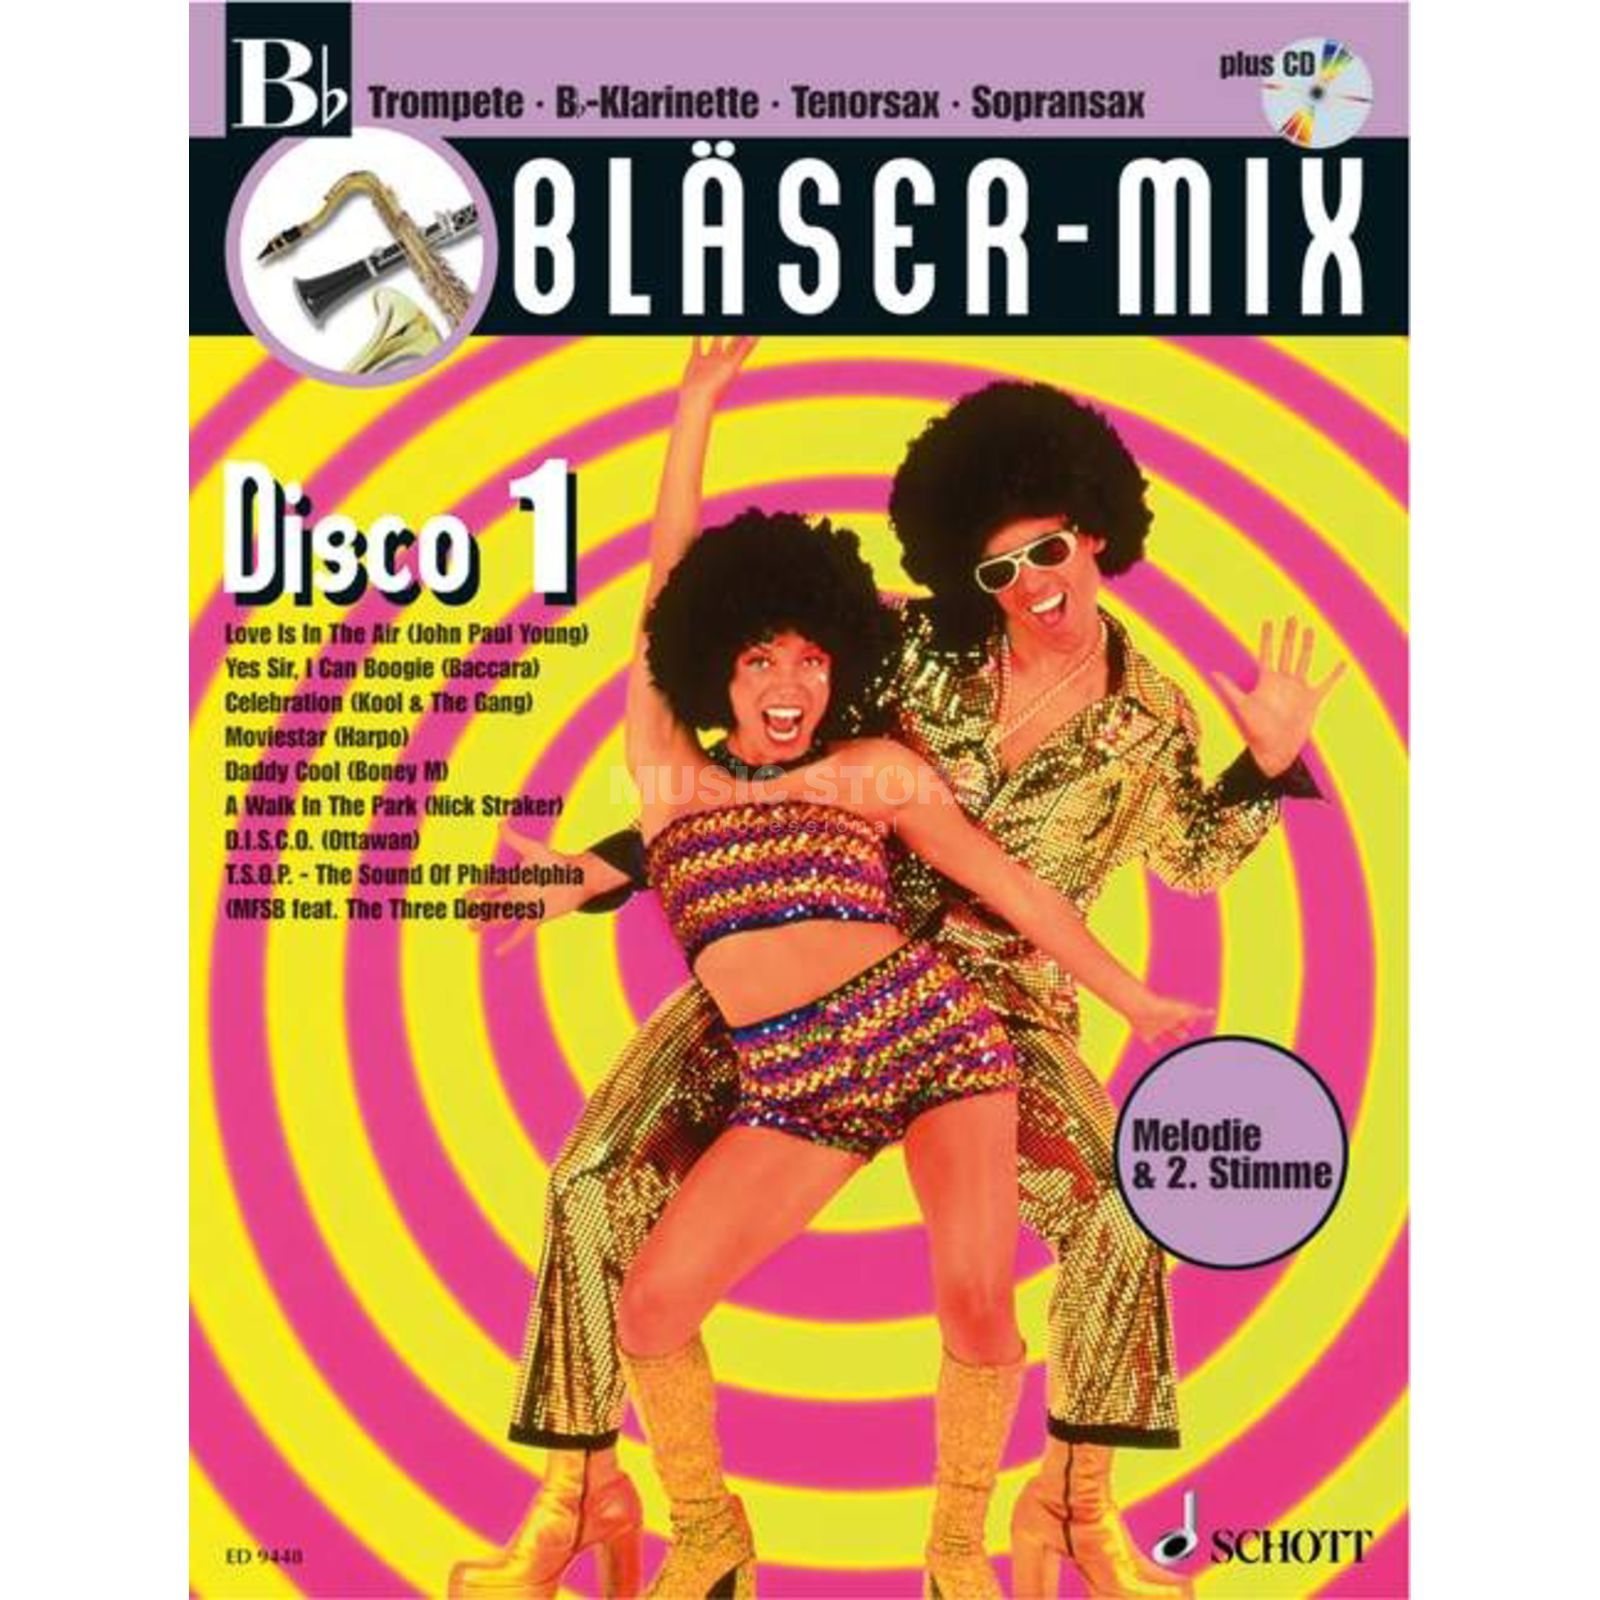 Schott Music Disco, Bläser-Mix Play-along Bb-Instrumente Produktbillede